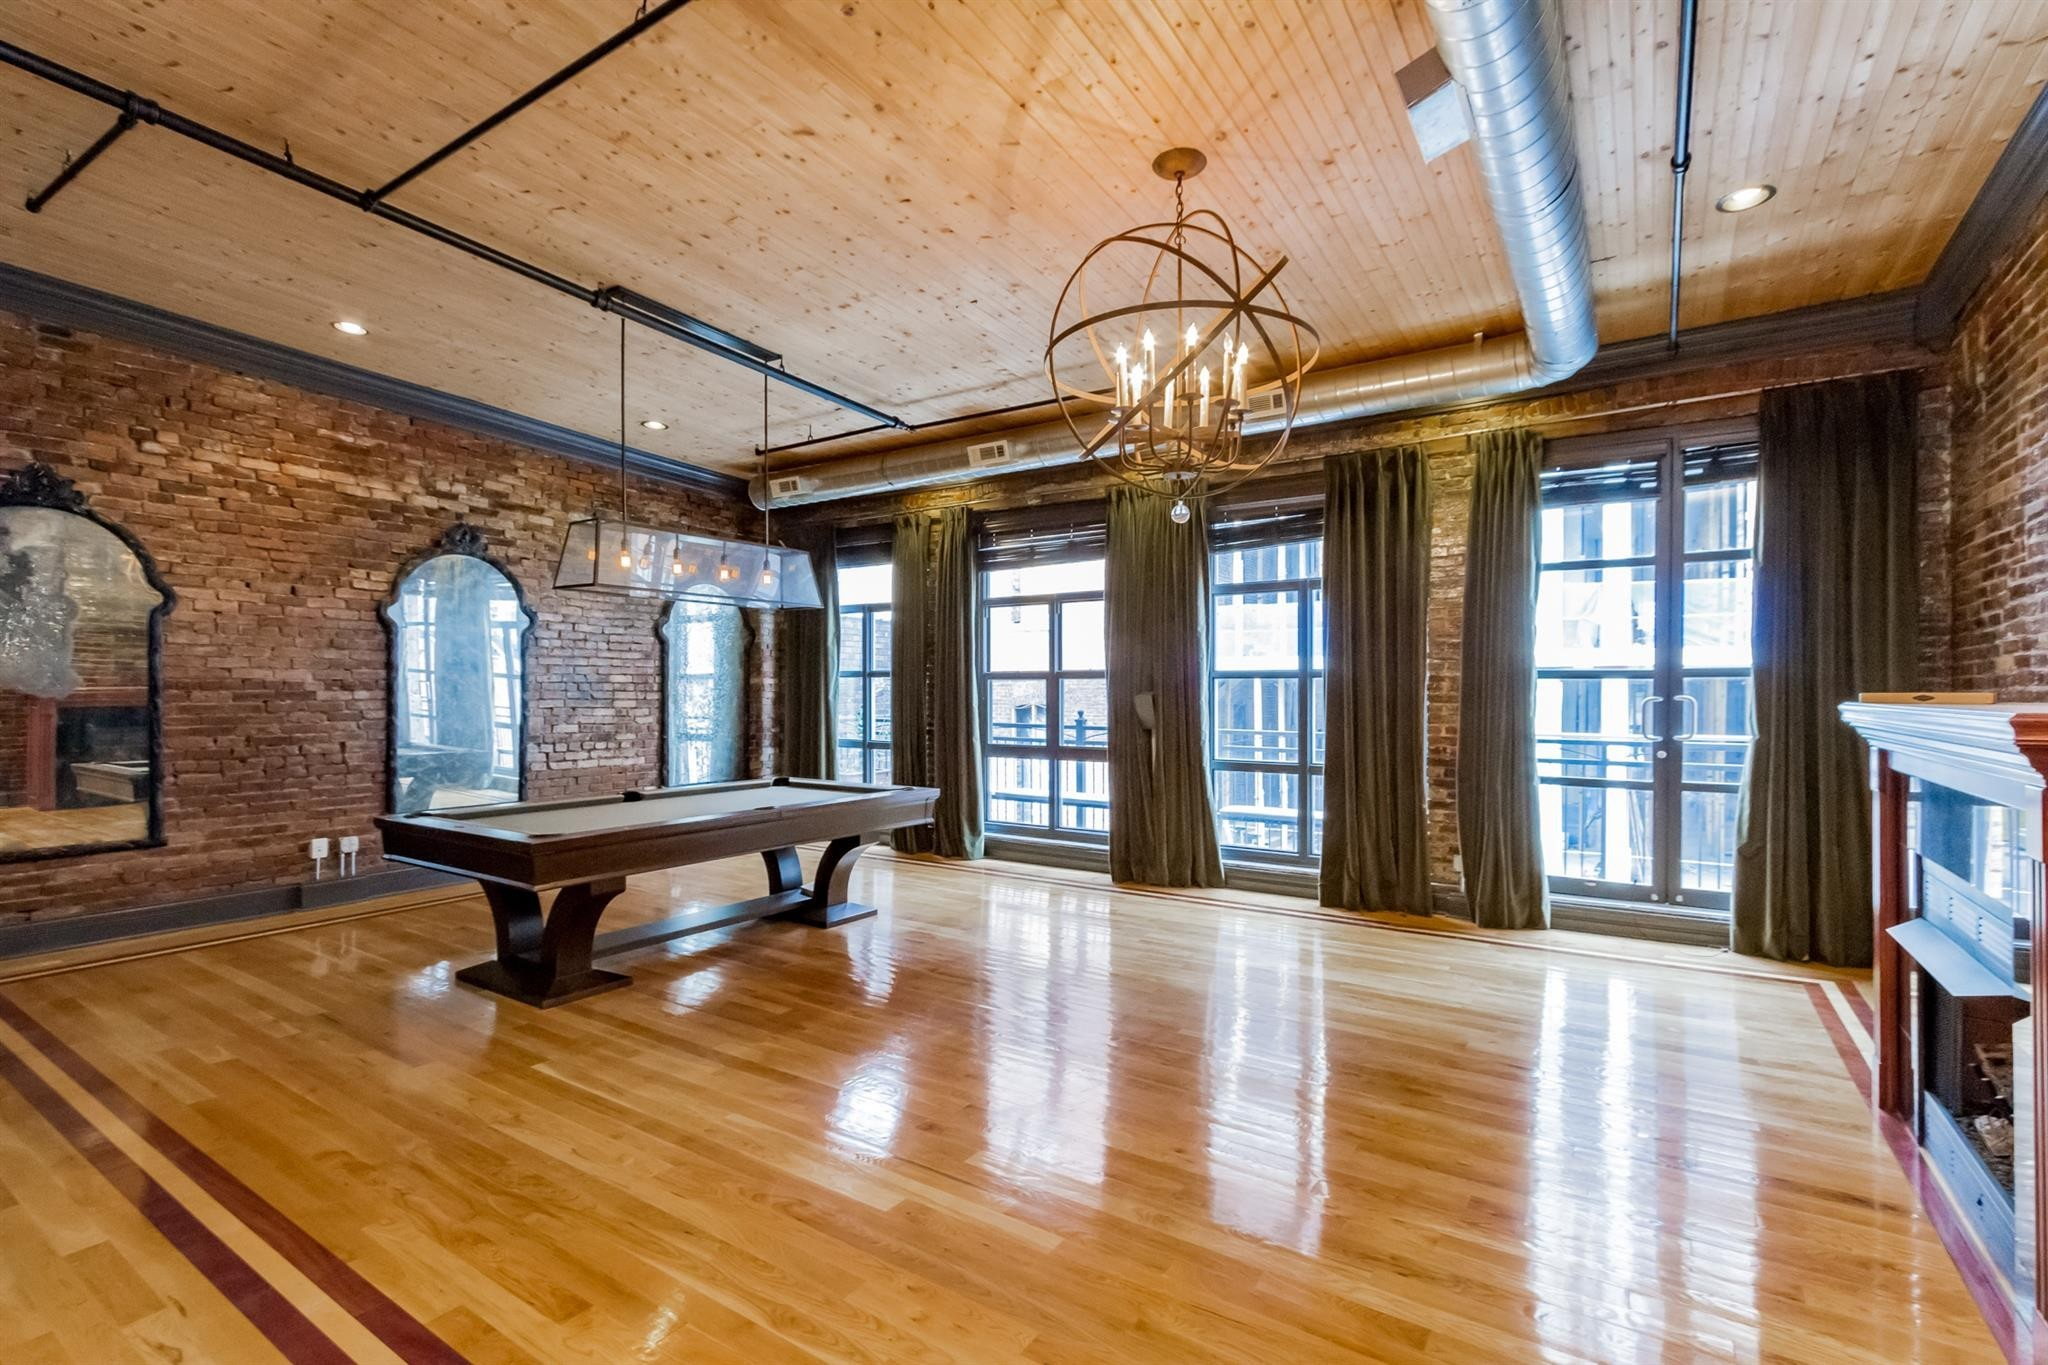 Stunning rare 3183 sq ft penthouse plus 600 sq ft rooftop terrace, views of Nissan Stadium, Ascend Amphitheater, Printers Alley & Batman Building. Nothing like it in the city. 2 fireplaces, exposed brick, original beams, hardwoods & granite, Chef's Kitchen with gas cooking. Restored building in historic district. Attached garage parking for multiple cars & private entry w/ elevator to penthouse. Live in the heart of Nashville. Rentable; Short Term not currently allowed but up for HOA vote soon.